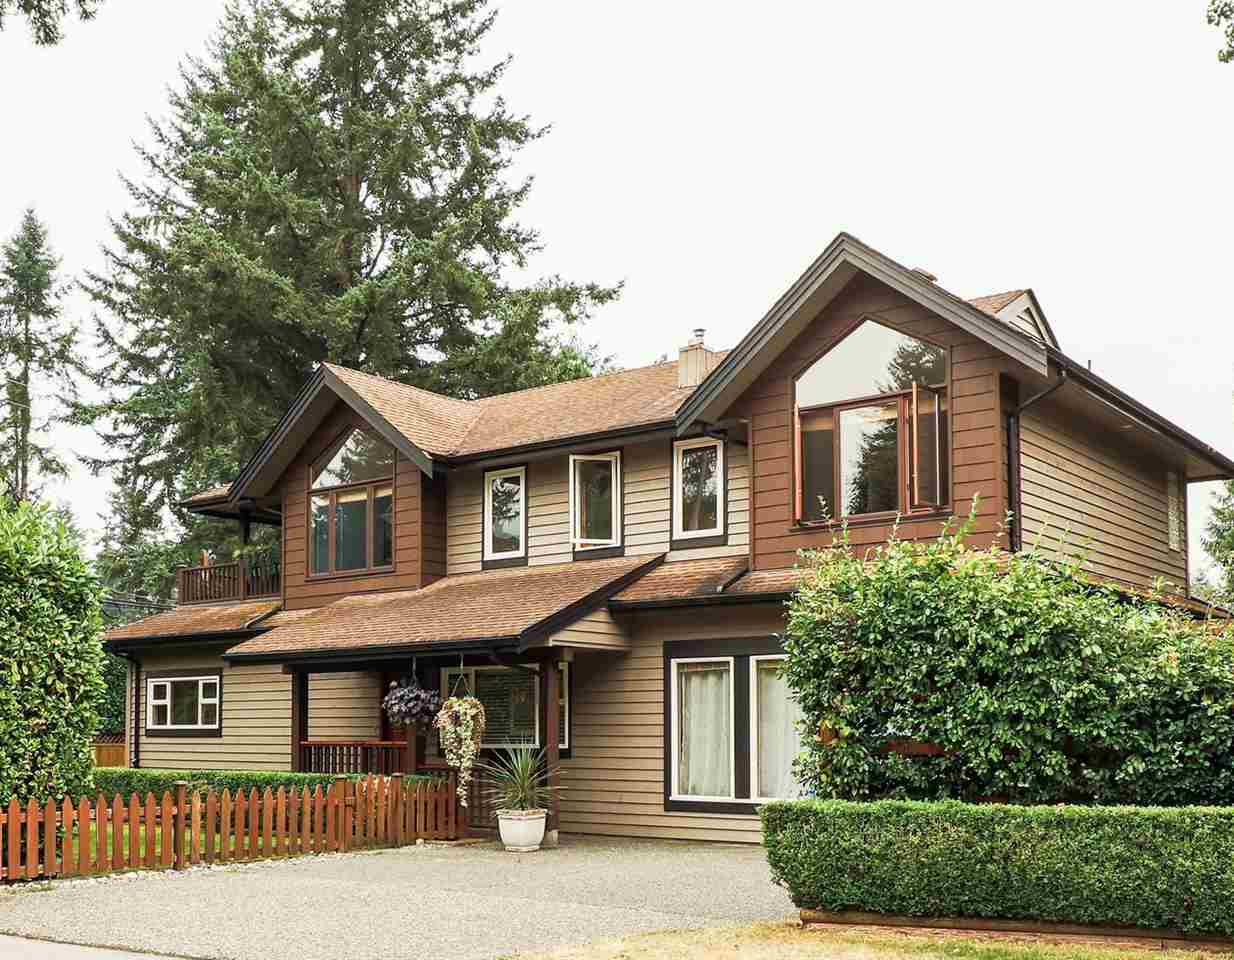 Updated craftsman home in family friendly Blueridge! Feat 3 beds, 3 baths, & 2,600 sq/ft of living space. Tastefully renovated in 2013, incl. an elegant kitchen w/ quartz counters, S/S appliances, & heated tile floors; adjacent dining room w/ bar addition; & 2 updated baths. Completing the main is a living room w/ gas fireplace & original oak H/W floors, large fam-room (or 4th bed), laundry & 2 beds. French doors lead to a 800 sq/ft deck feat. gazebo, gas hook-up & hot tub - fantastic for entertaining! Upper level added in 2001 & includes master bdrm w/ vaulted ceiling, WIC & 5-pc ensuite; office w/balcony; & terrific great room. Offering a fully private, hedged & fenced yard, situated on a 7,500 sq/ft corner lot on a quiet cul-de-sac. Schools, transit & an abundance of trails steps away!